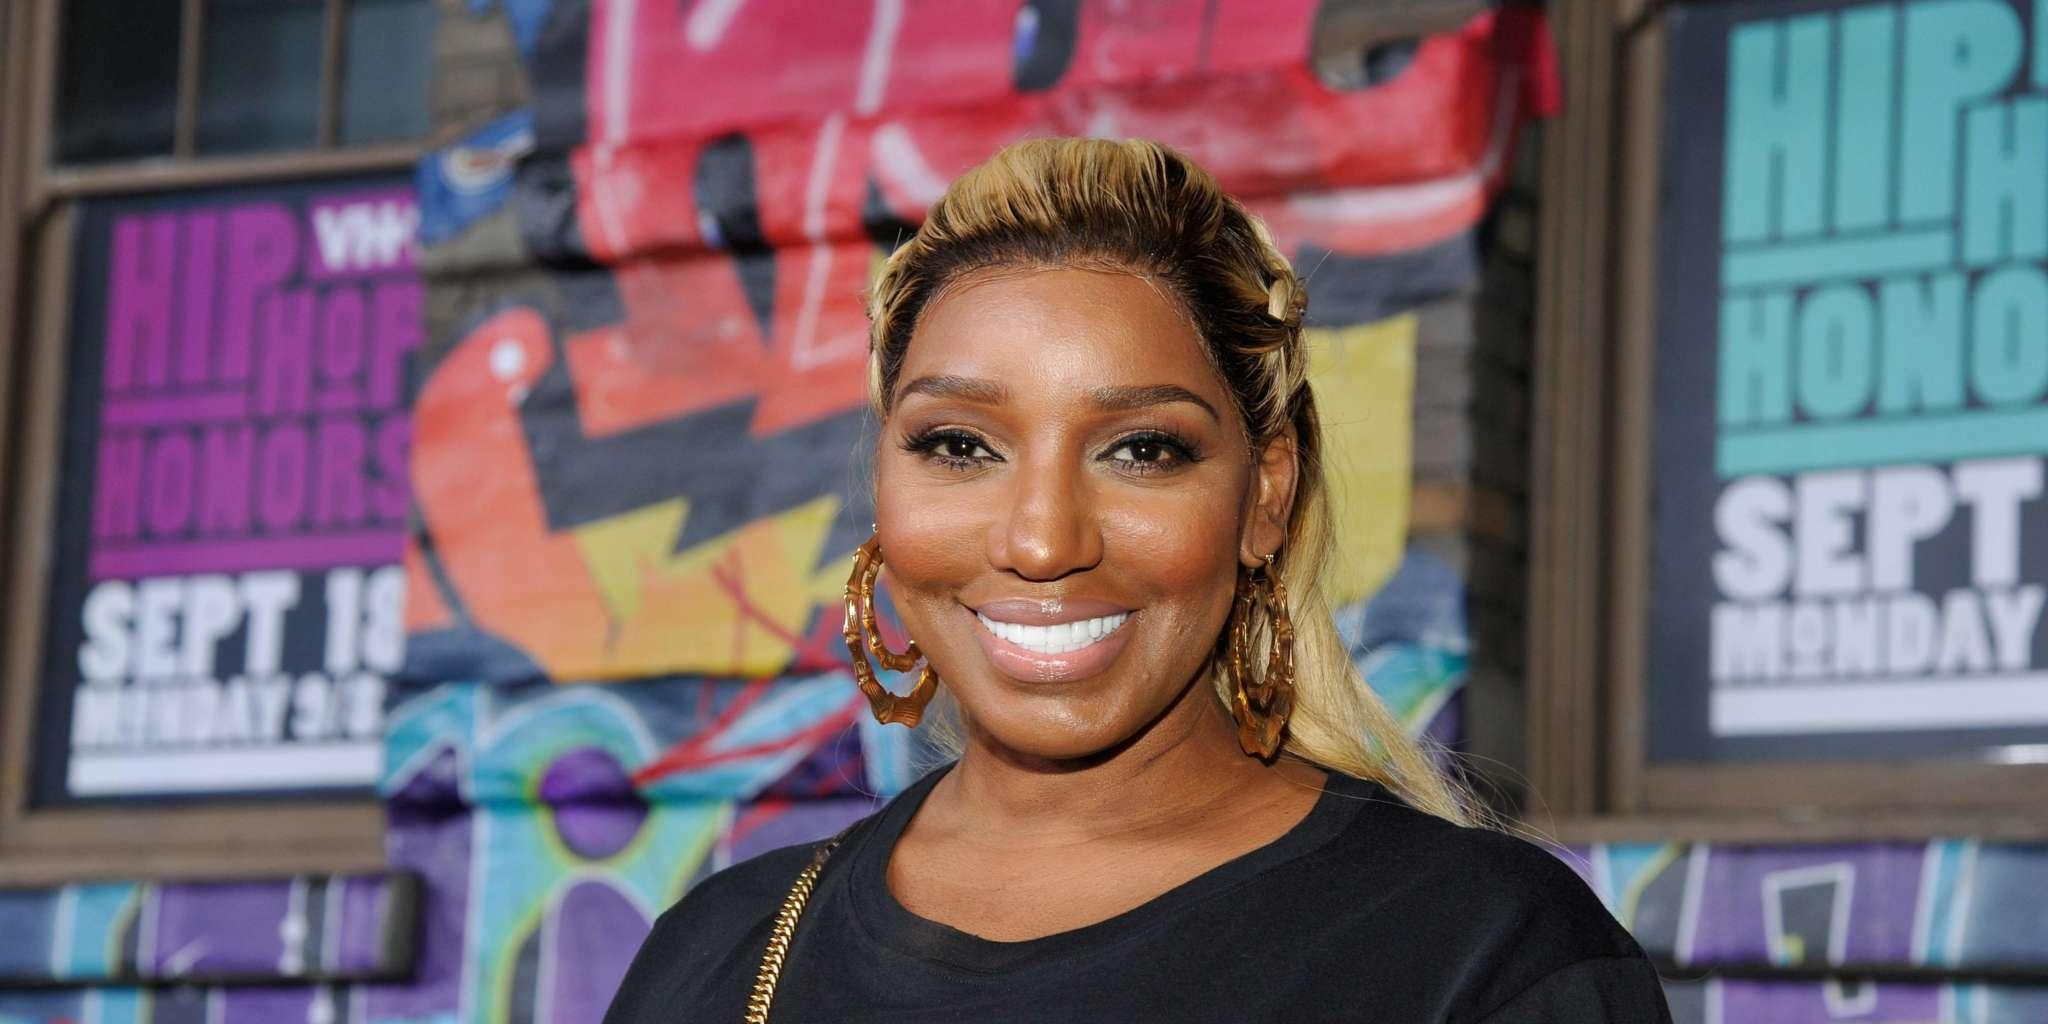 NeNe Leakes Reveals One Of Her 'Hunni Challenge' Winners - Check Out The Group's Dance Here